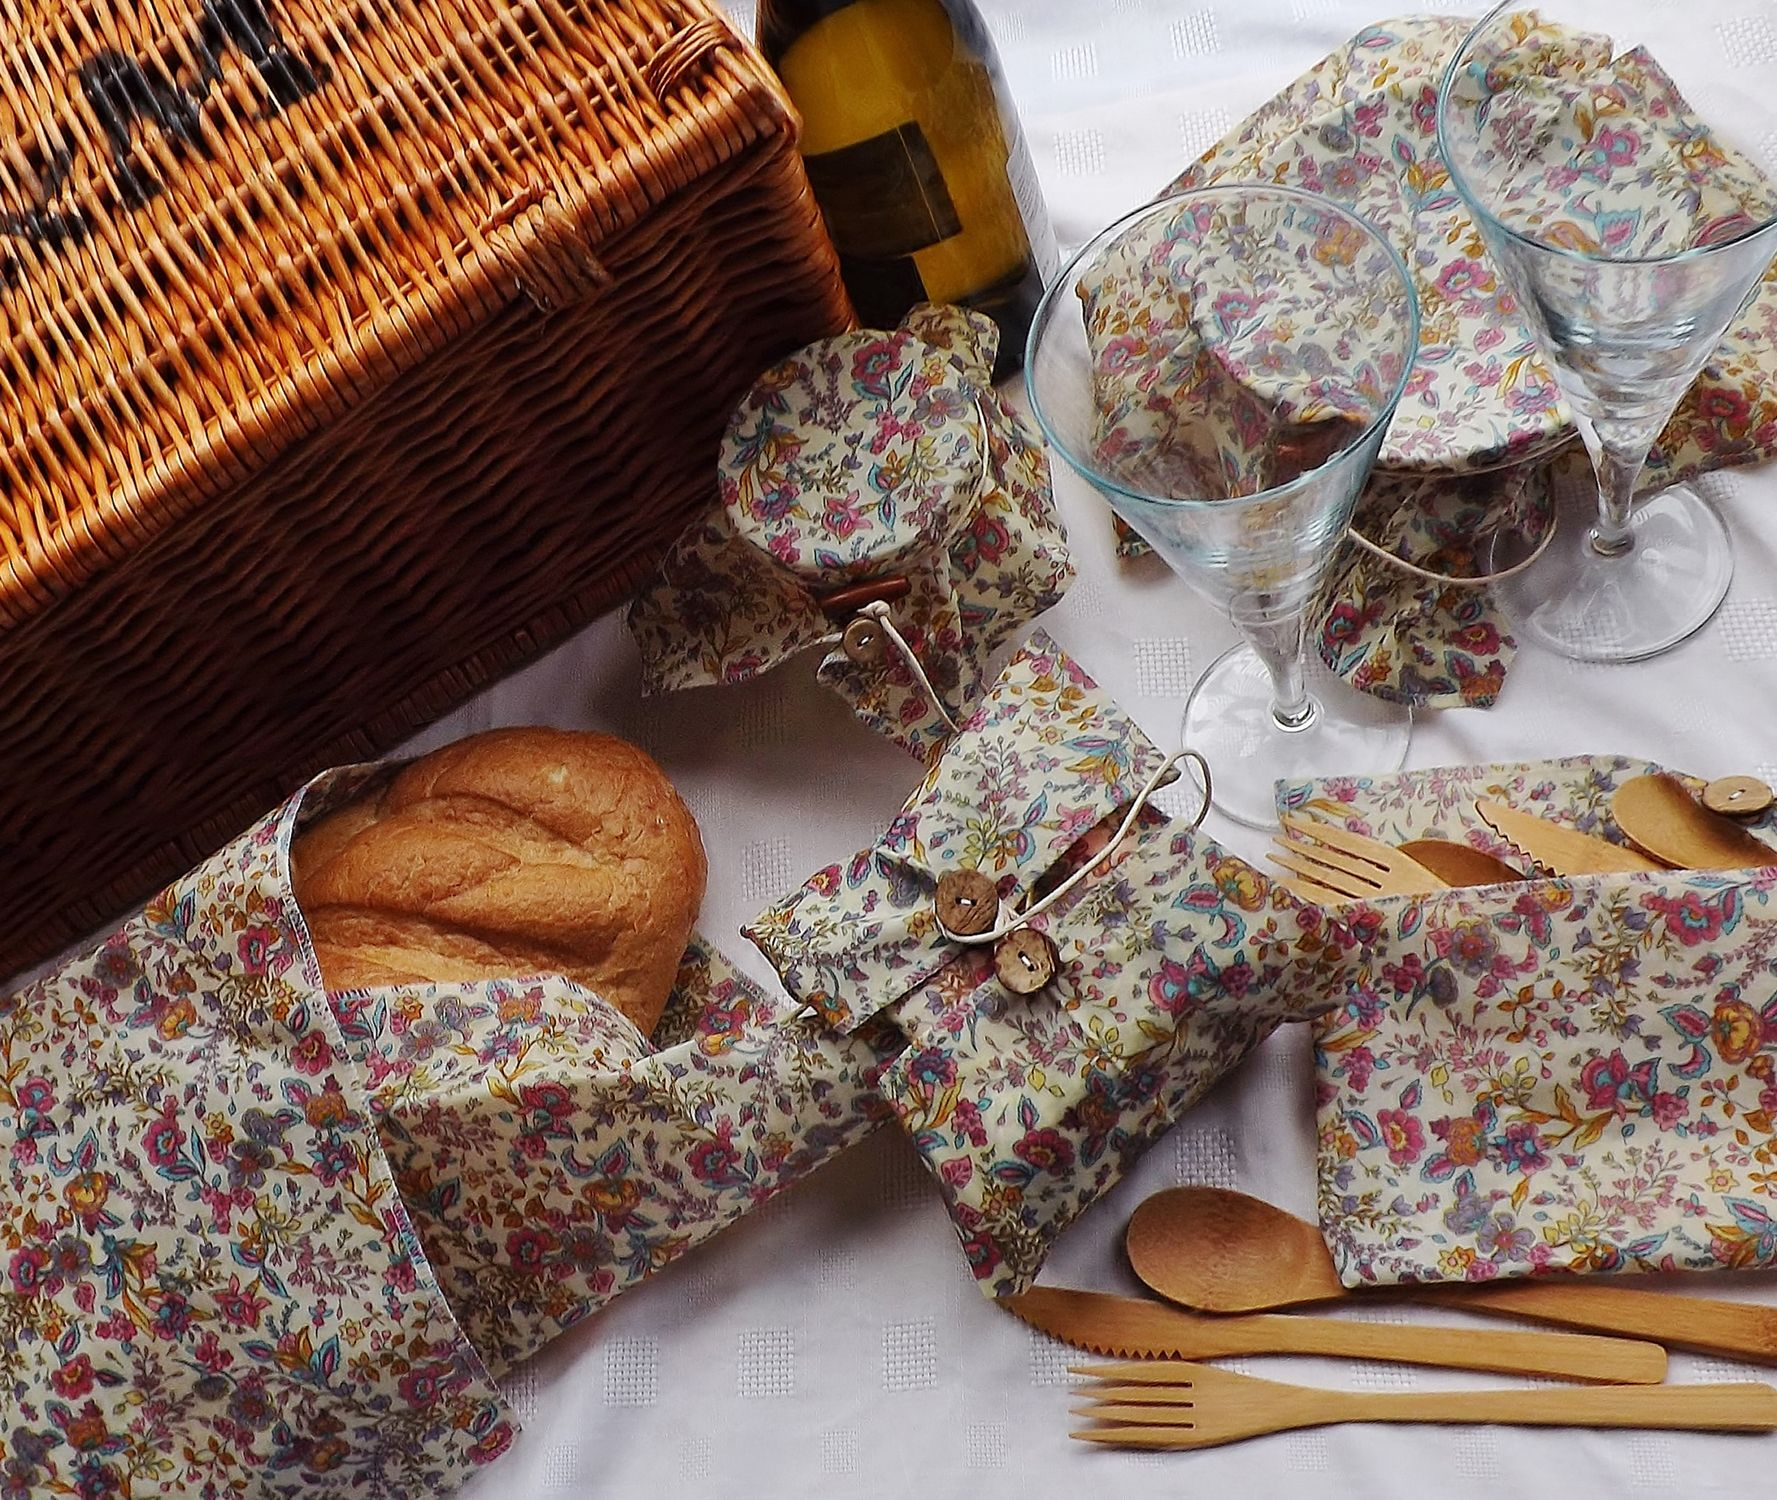 V-Eco Food Wraps, PicnicPack  - a variety of food in fabric waxed wraps  with bamboo cutlery, glasses and a picnic hamper basket